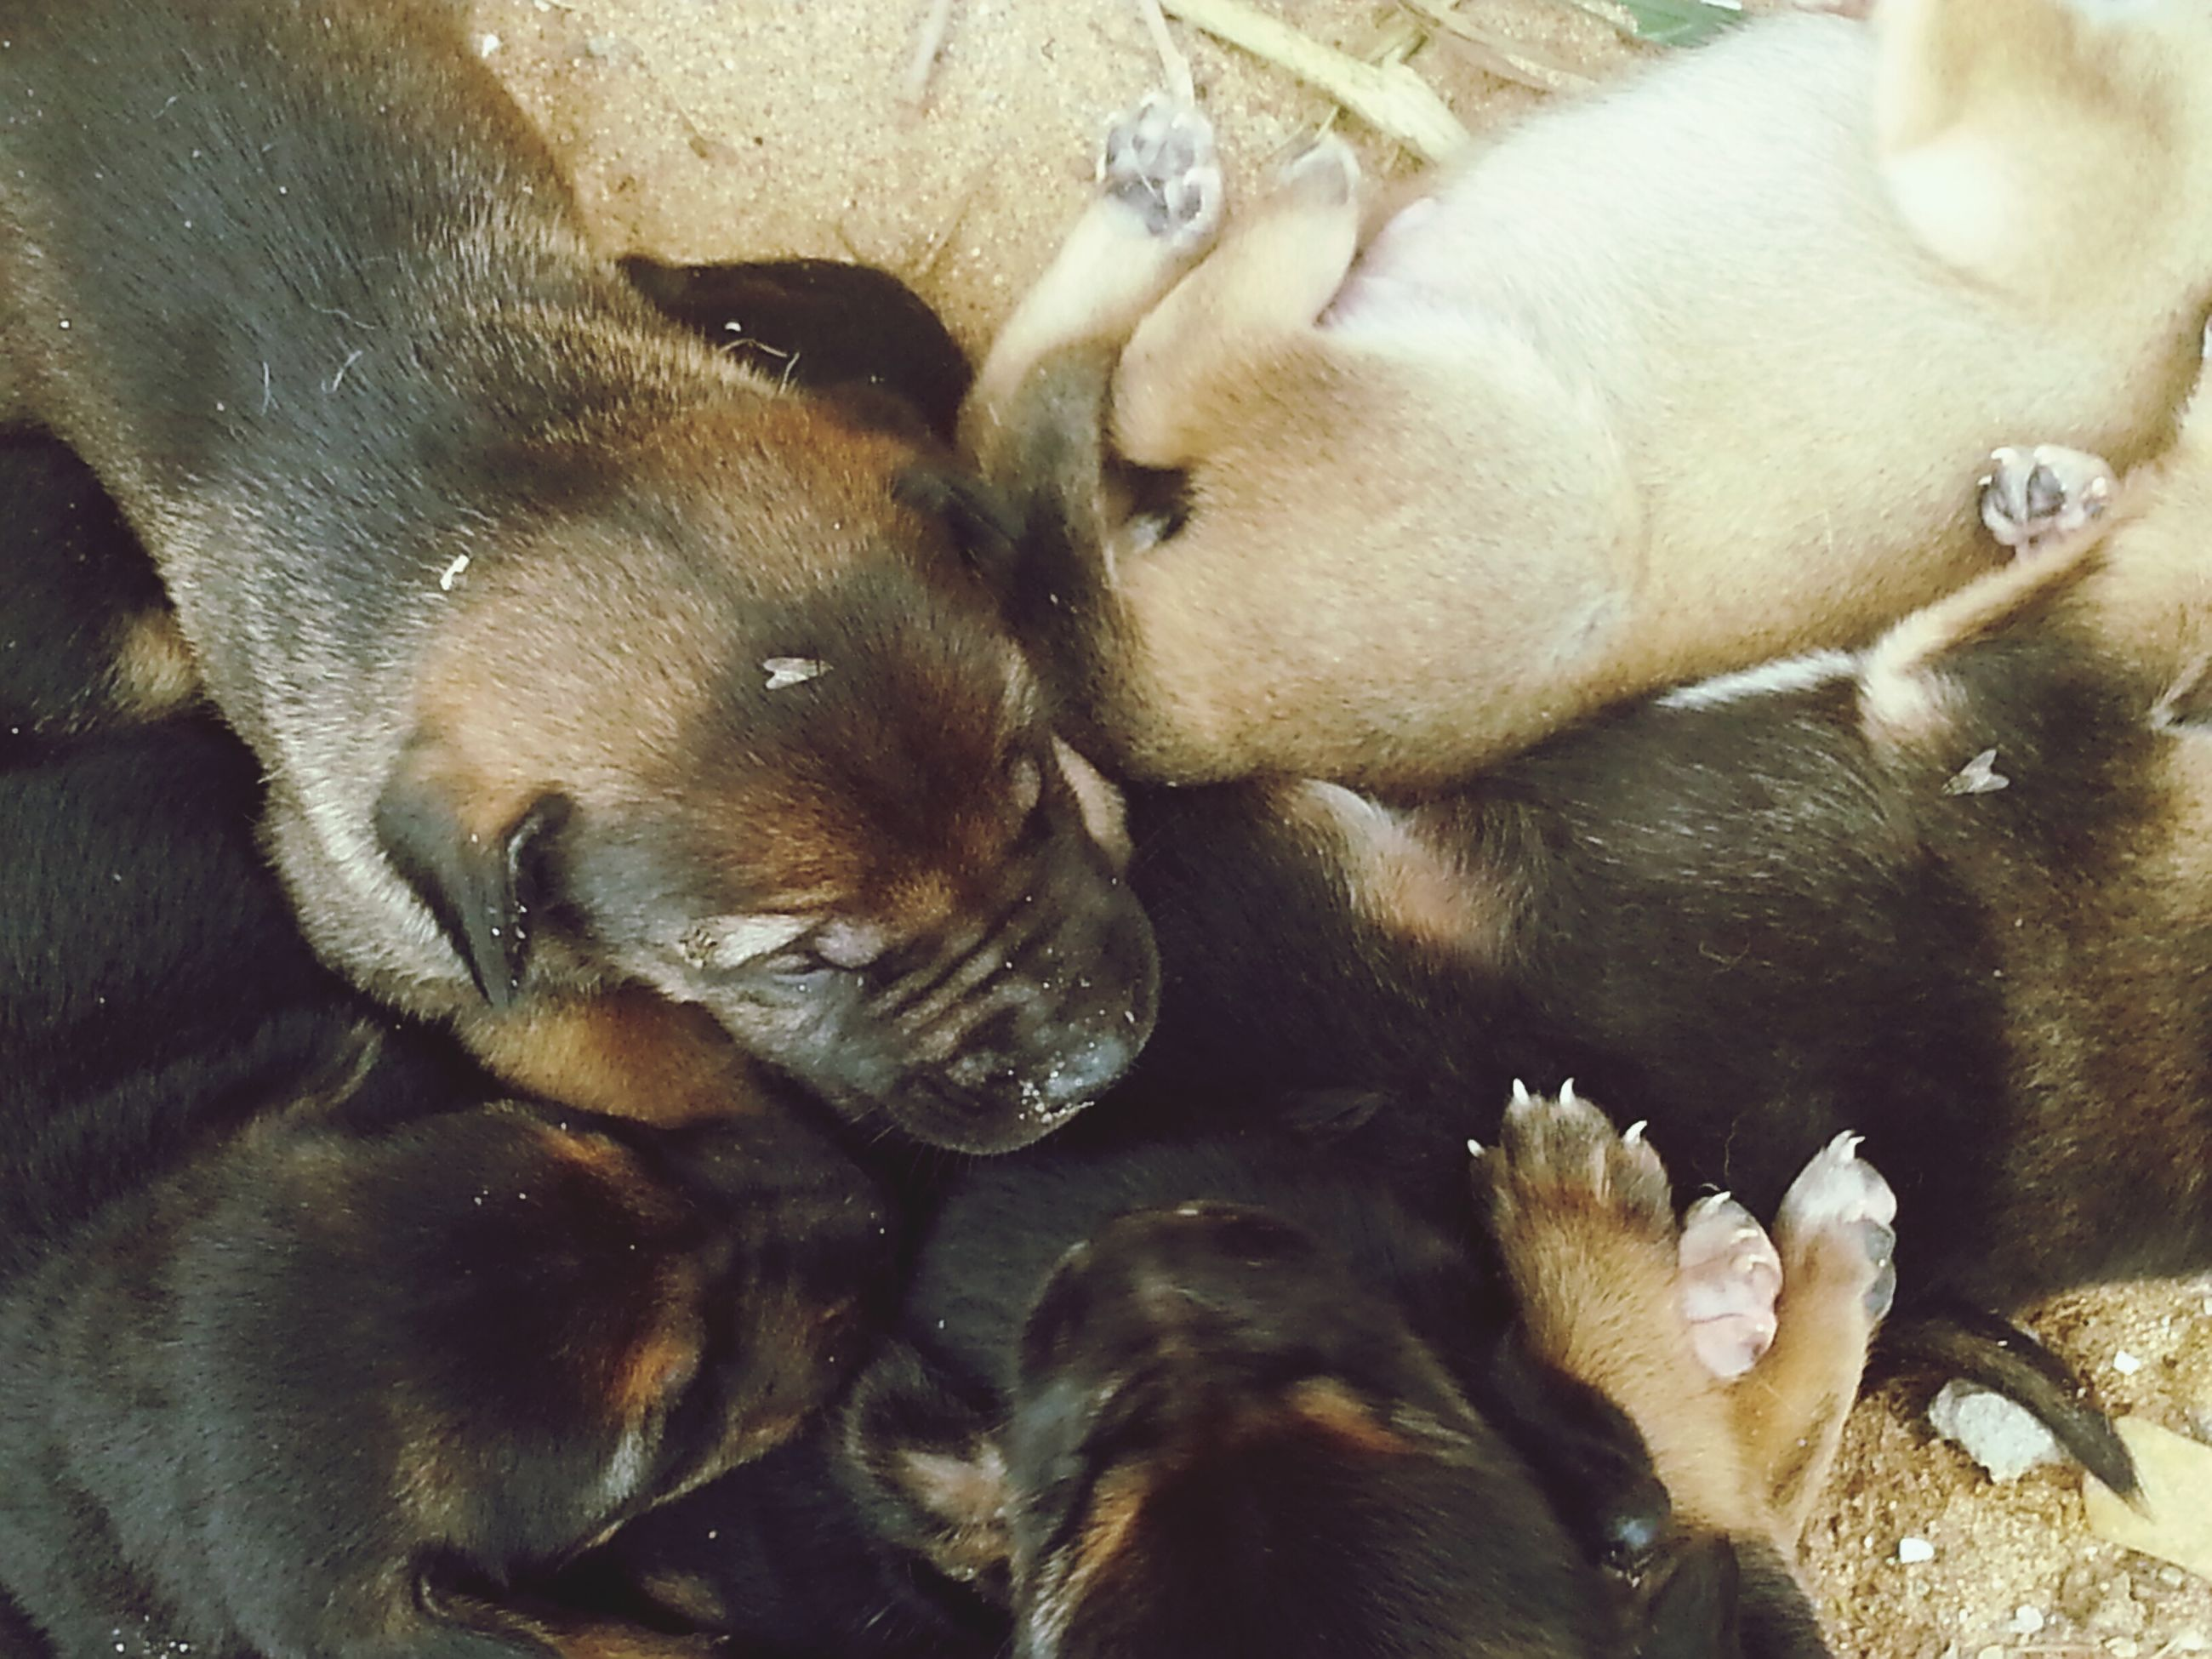 animal themes, mammal, domestic animals, pets, dog, two animals, one animal, high angle view, togetherness, young animal, animal family, three animals, animals in the wild, relaxation, wildlife, day, no people, nature, resting, outdoors